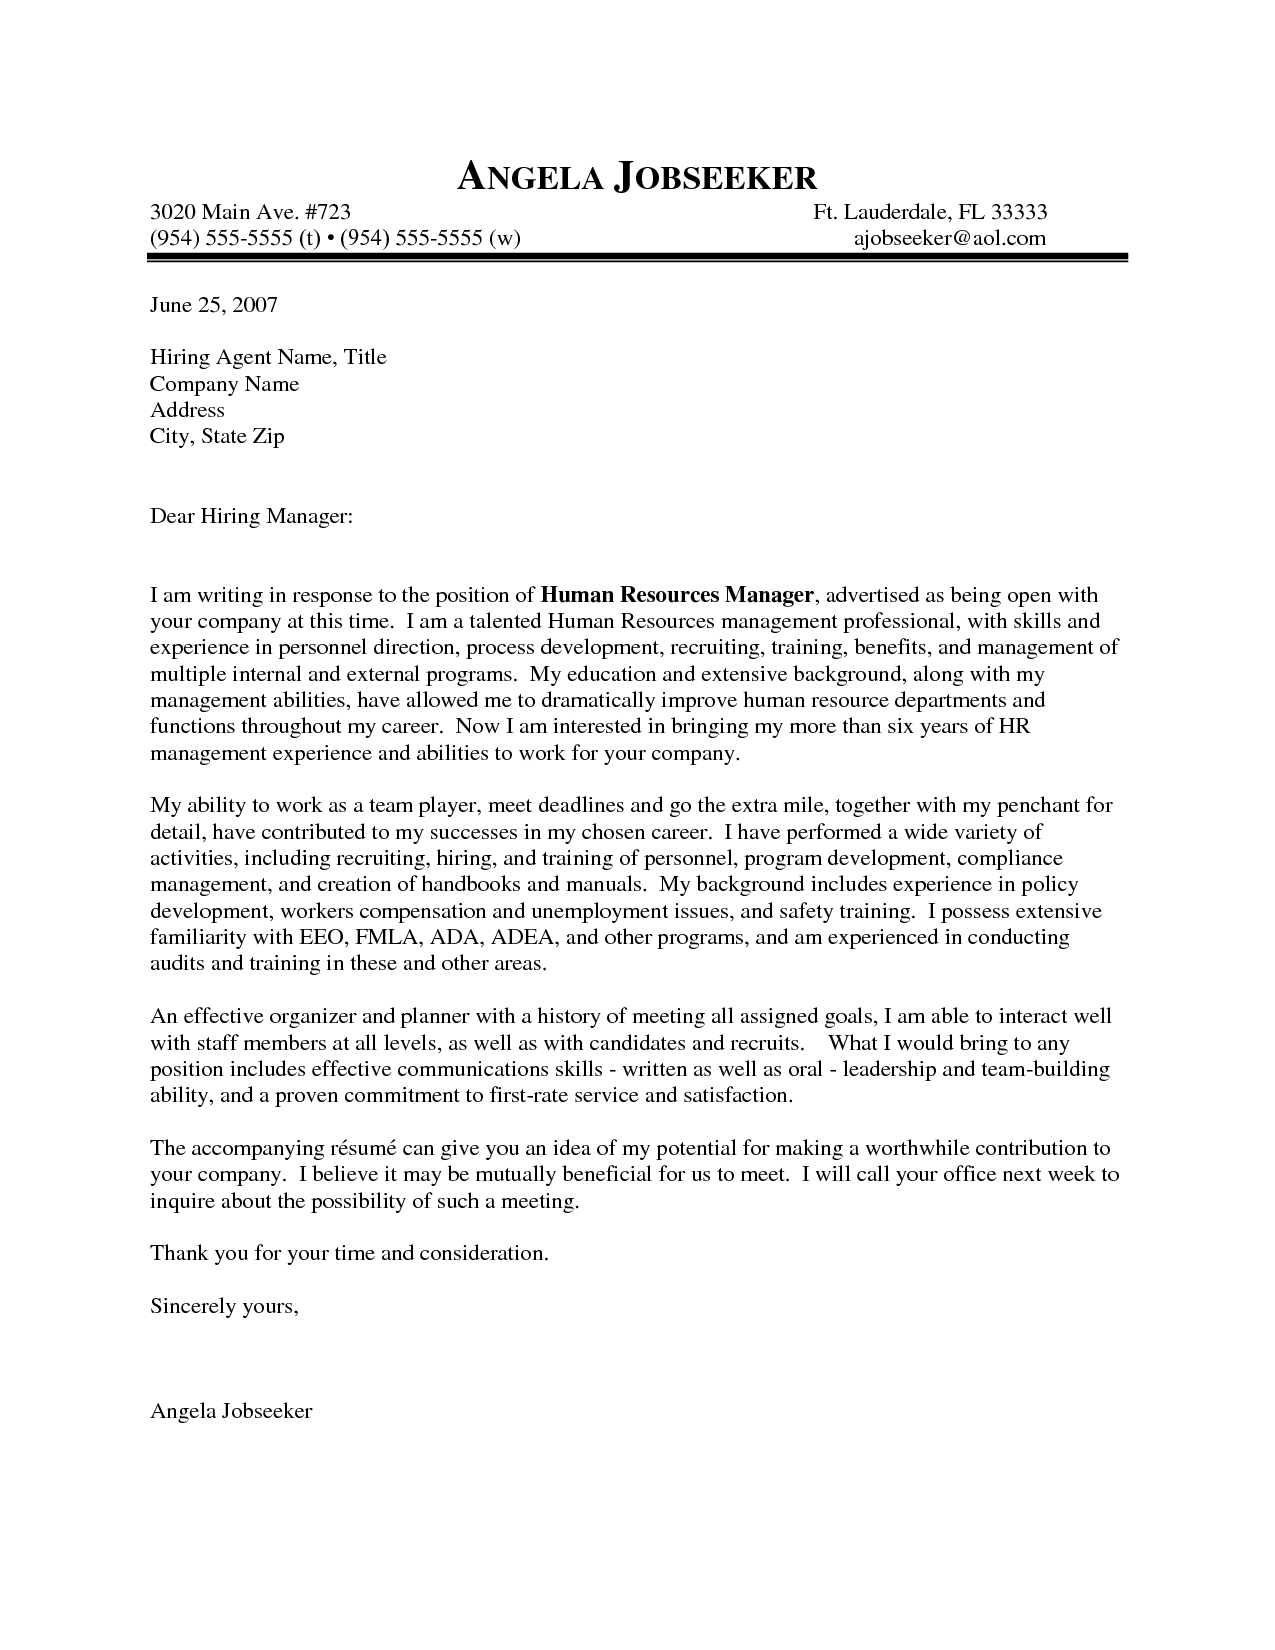 Effective Cover Letter Samples Outstanding Cover Letter Examples  Hr Manager Cover Letter